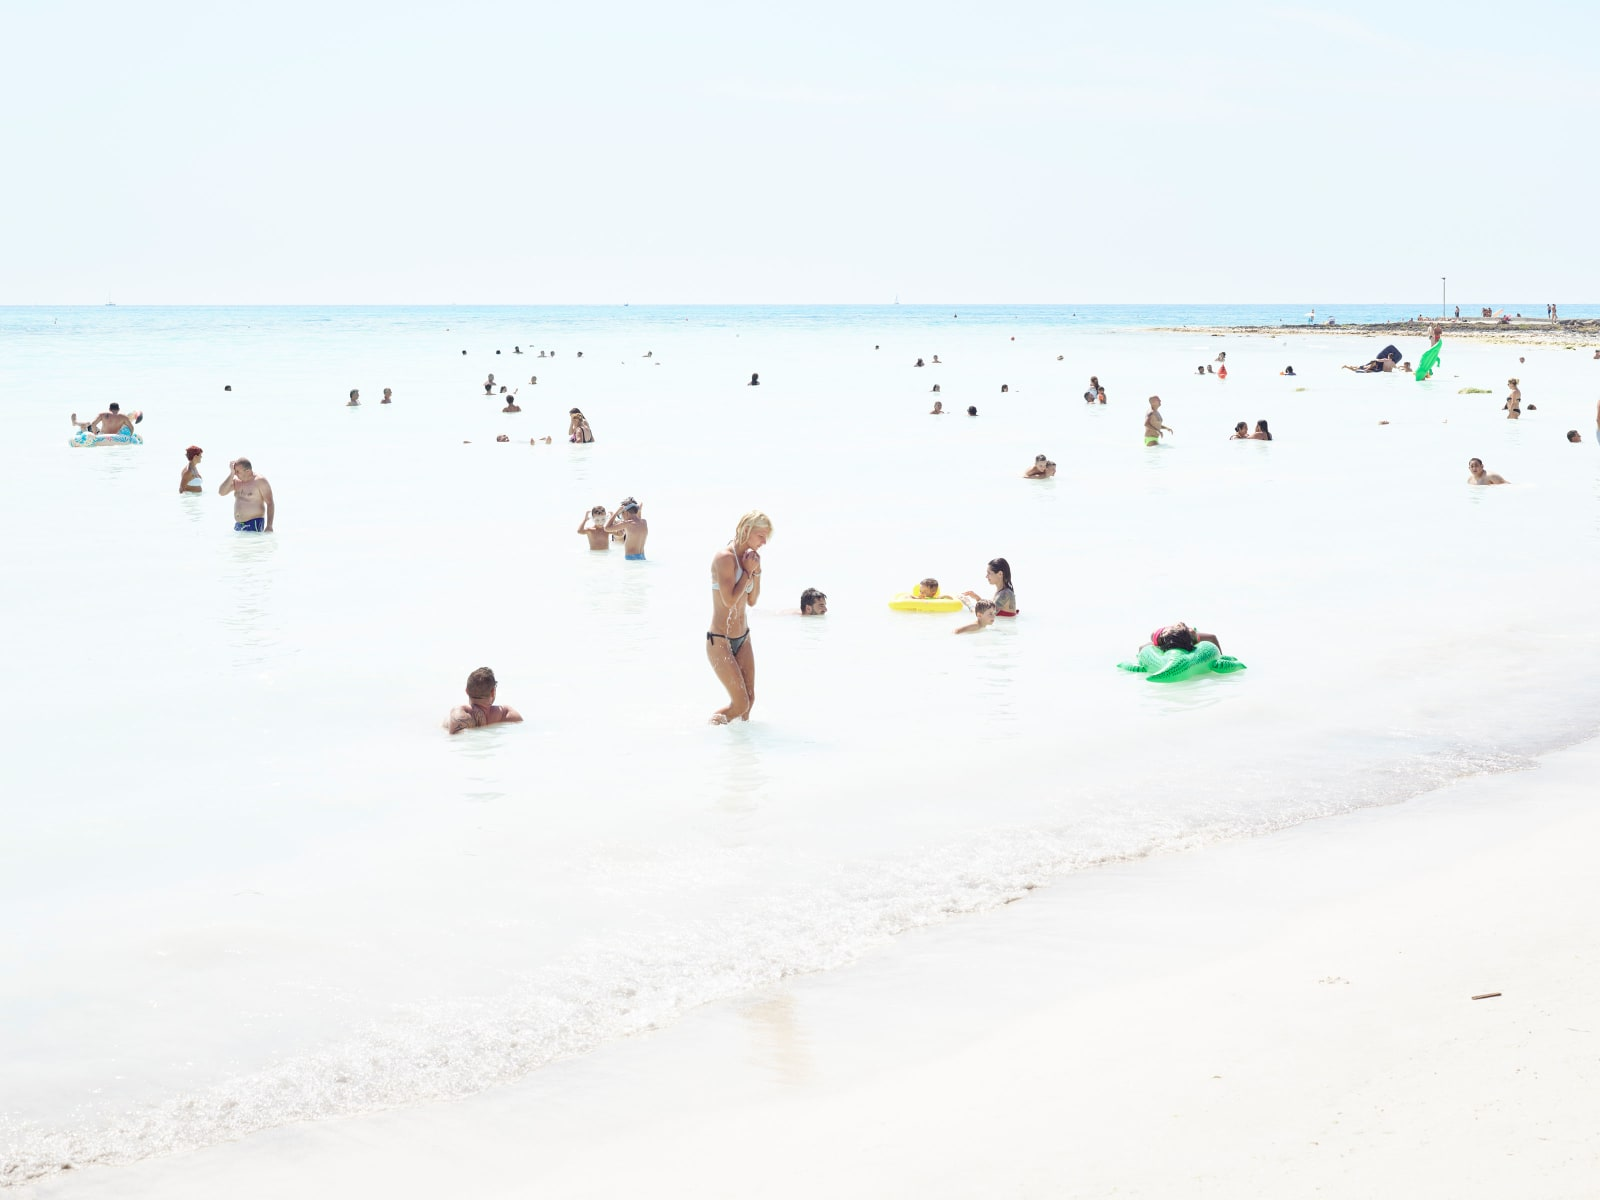 Blonde woman clasping hands in front of chest in ocean with other swimmers, by Massimo VItali